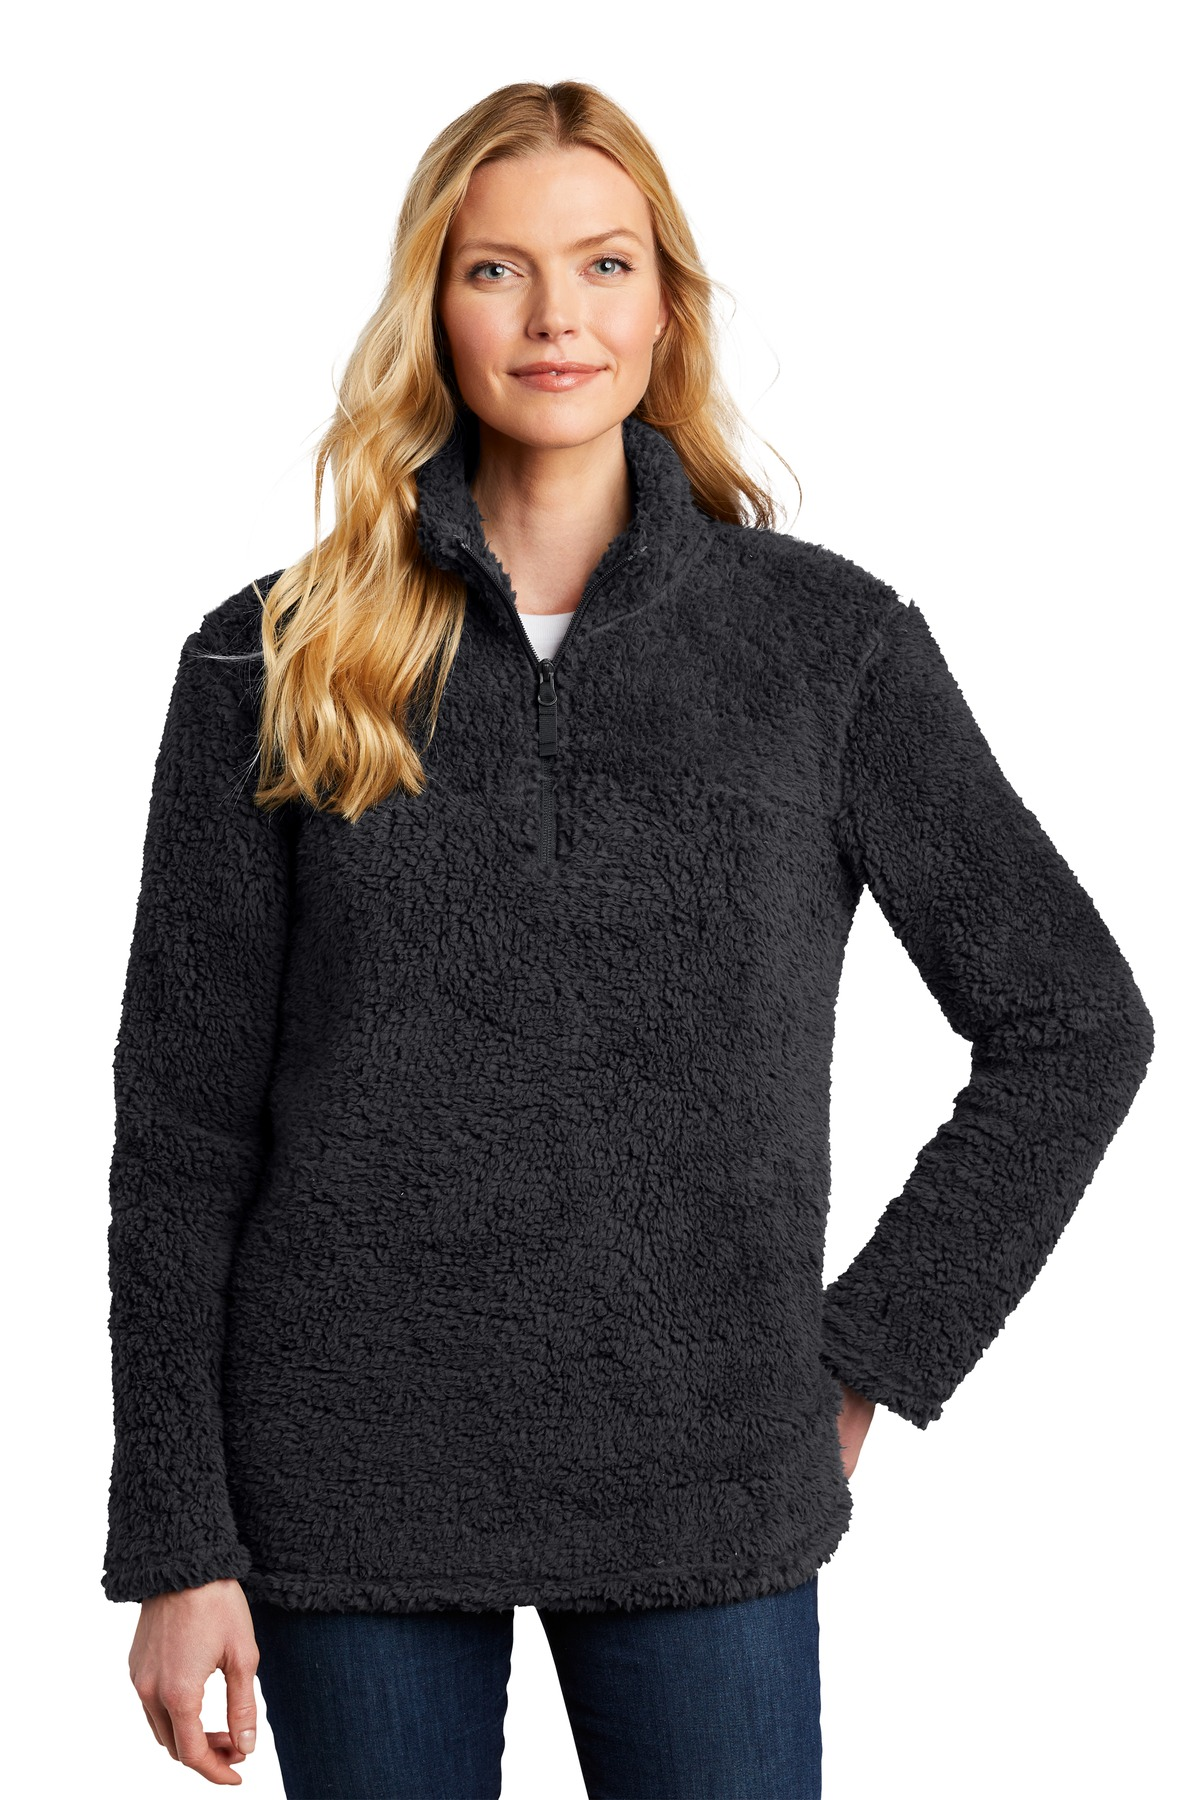 Port Authority  ®   Ladies Cozy 1/4-Zip Fleece L130 - Charcoal